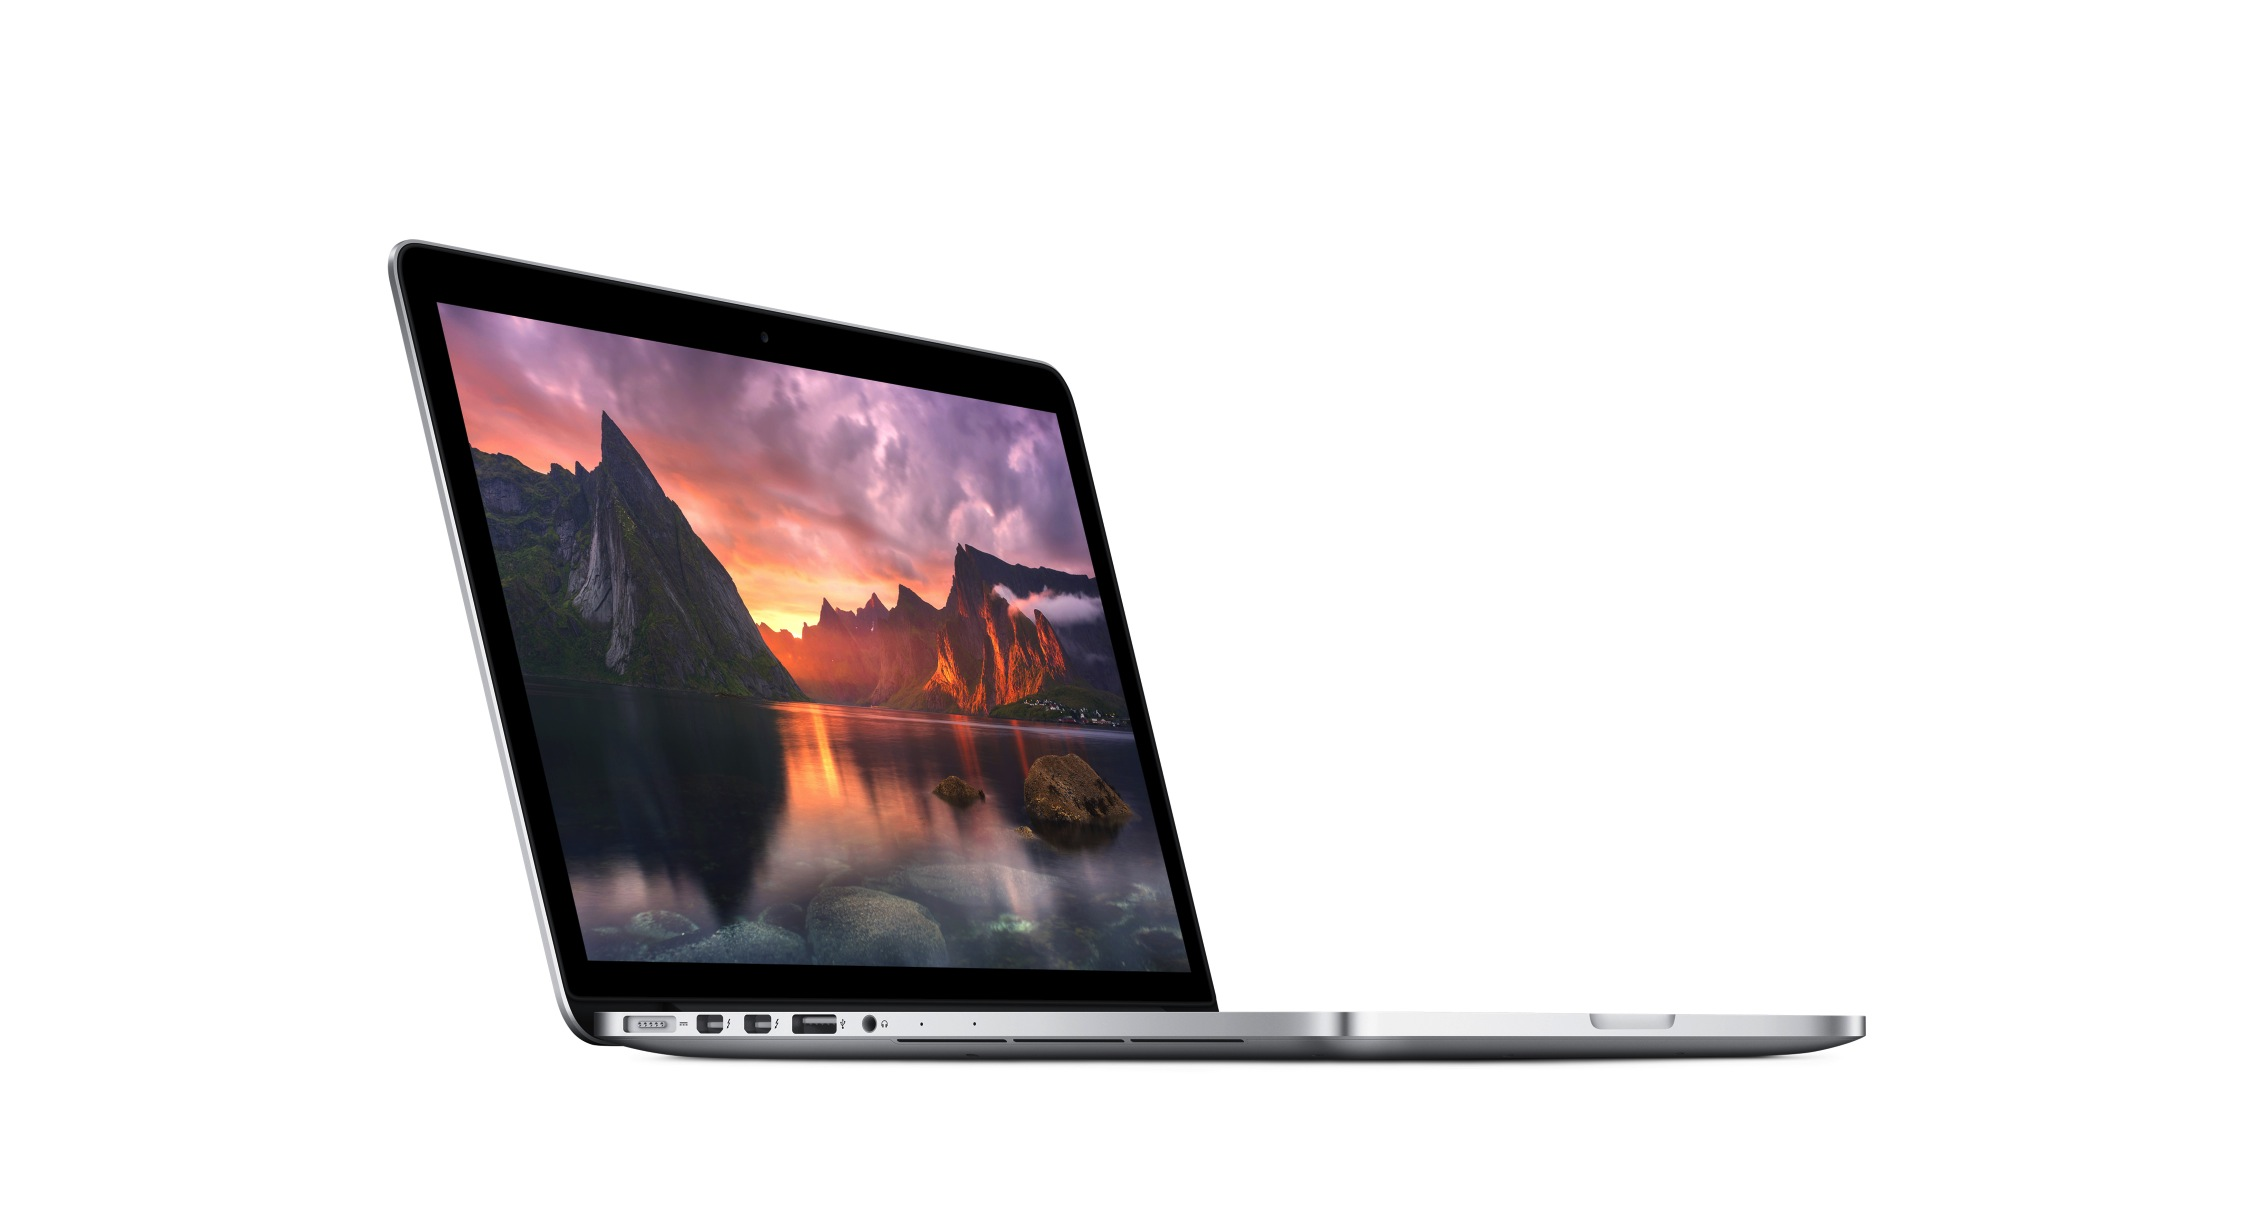 Apple might delay launch of rumored 12-inch Retina MacBook until early 2015